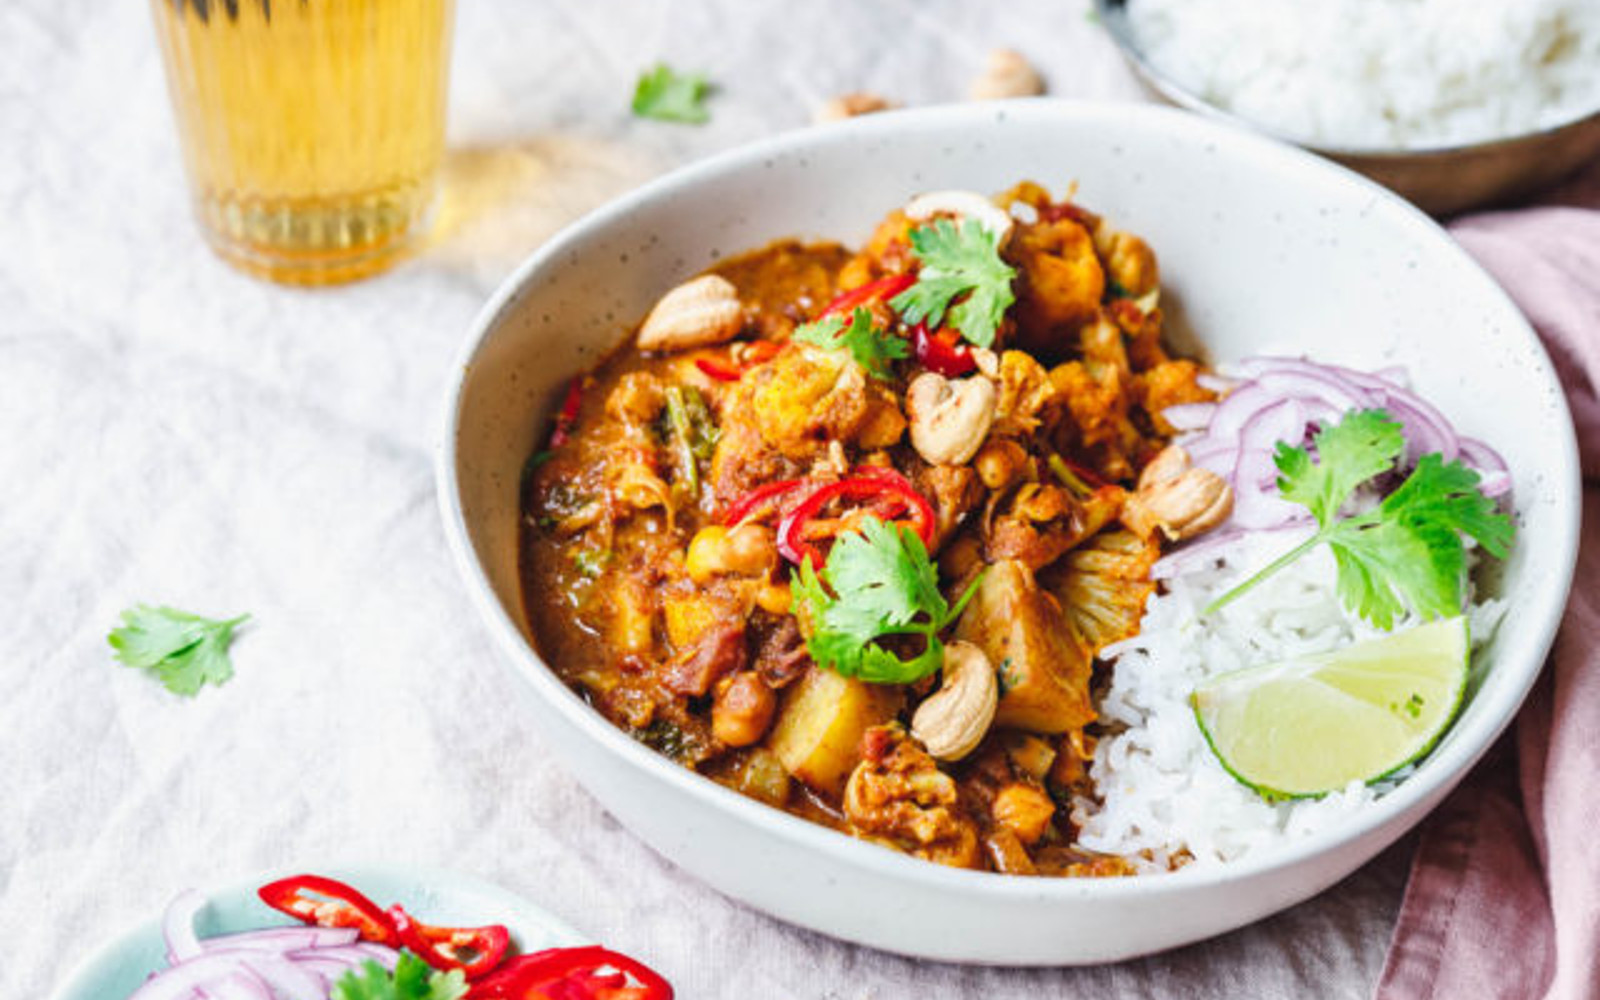 Aloo Gobi - Cauliflower Curry With Potatoes and Chickpeas